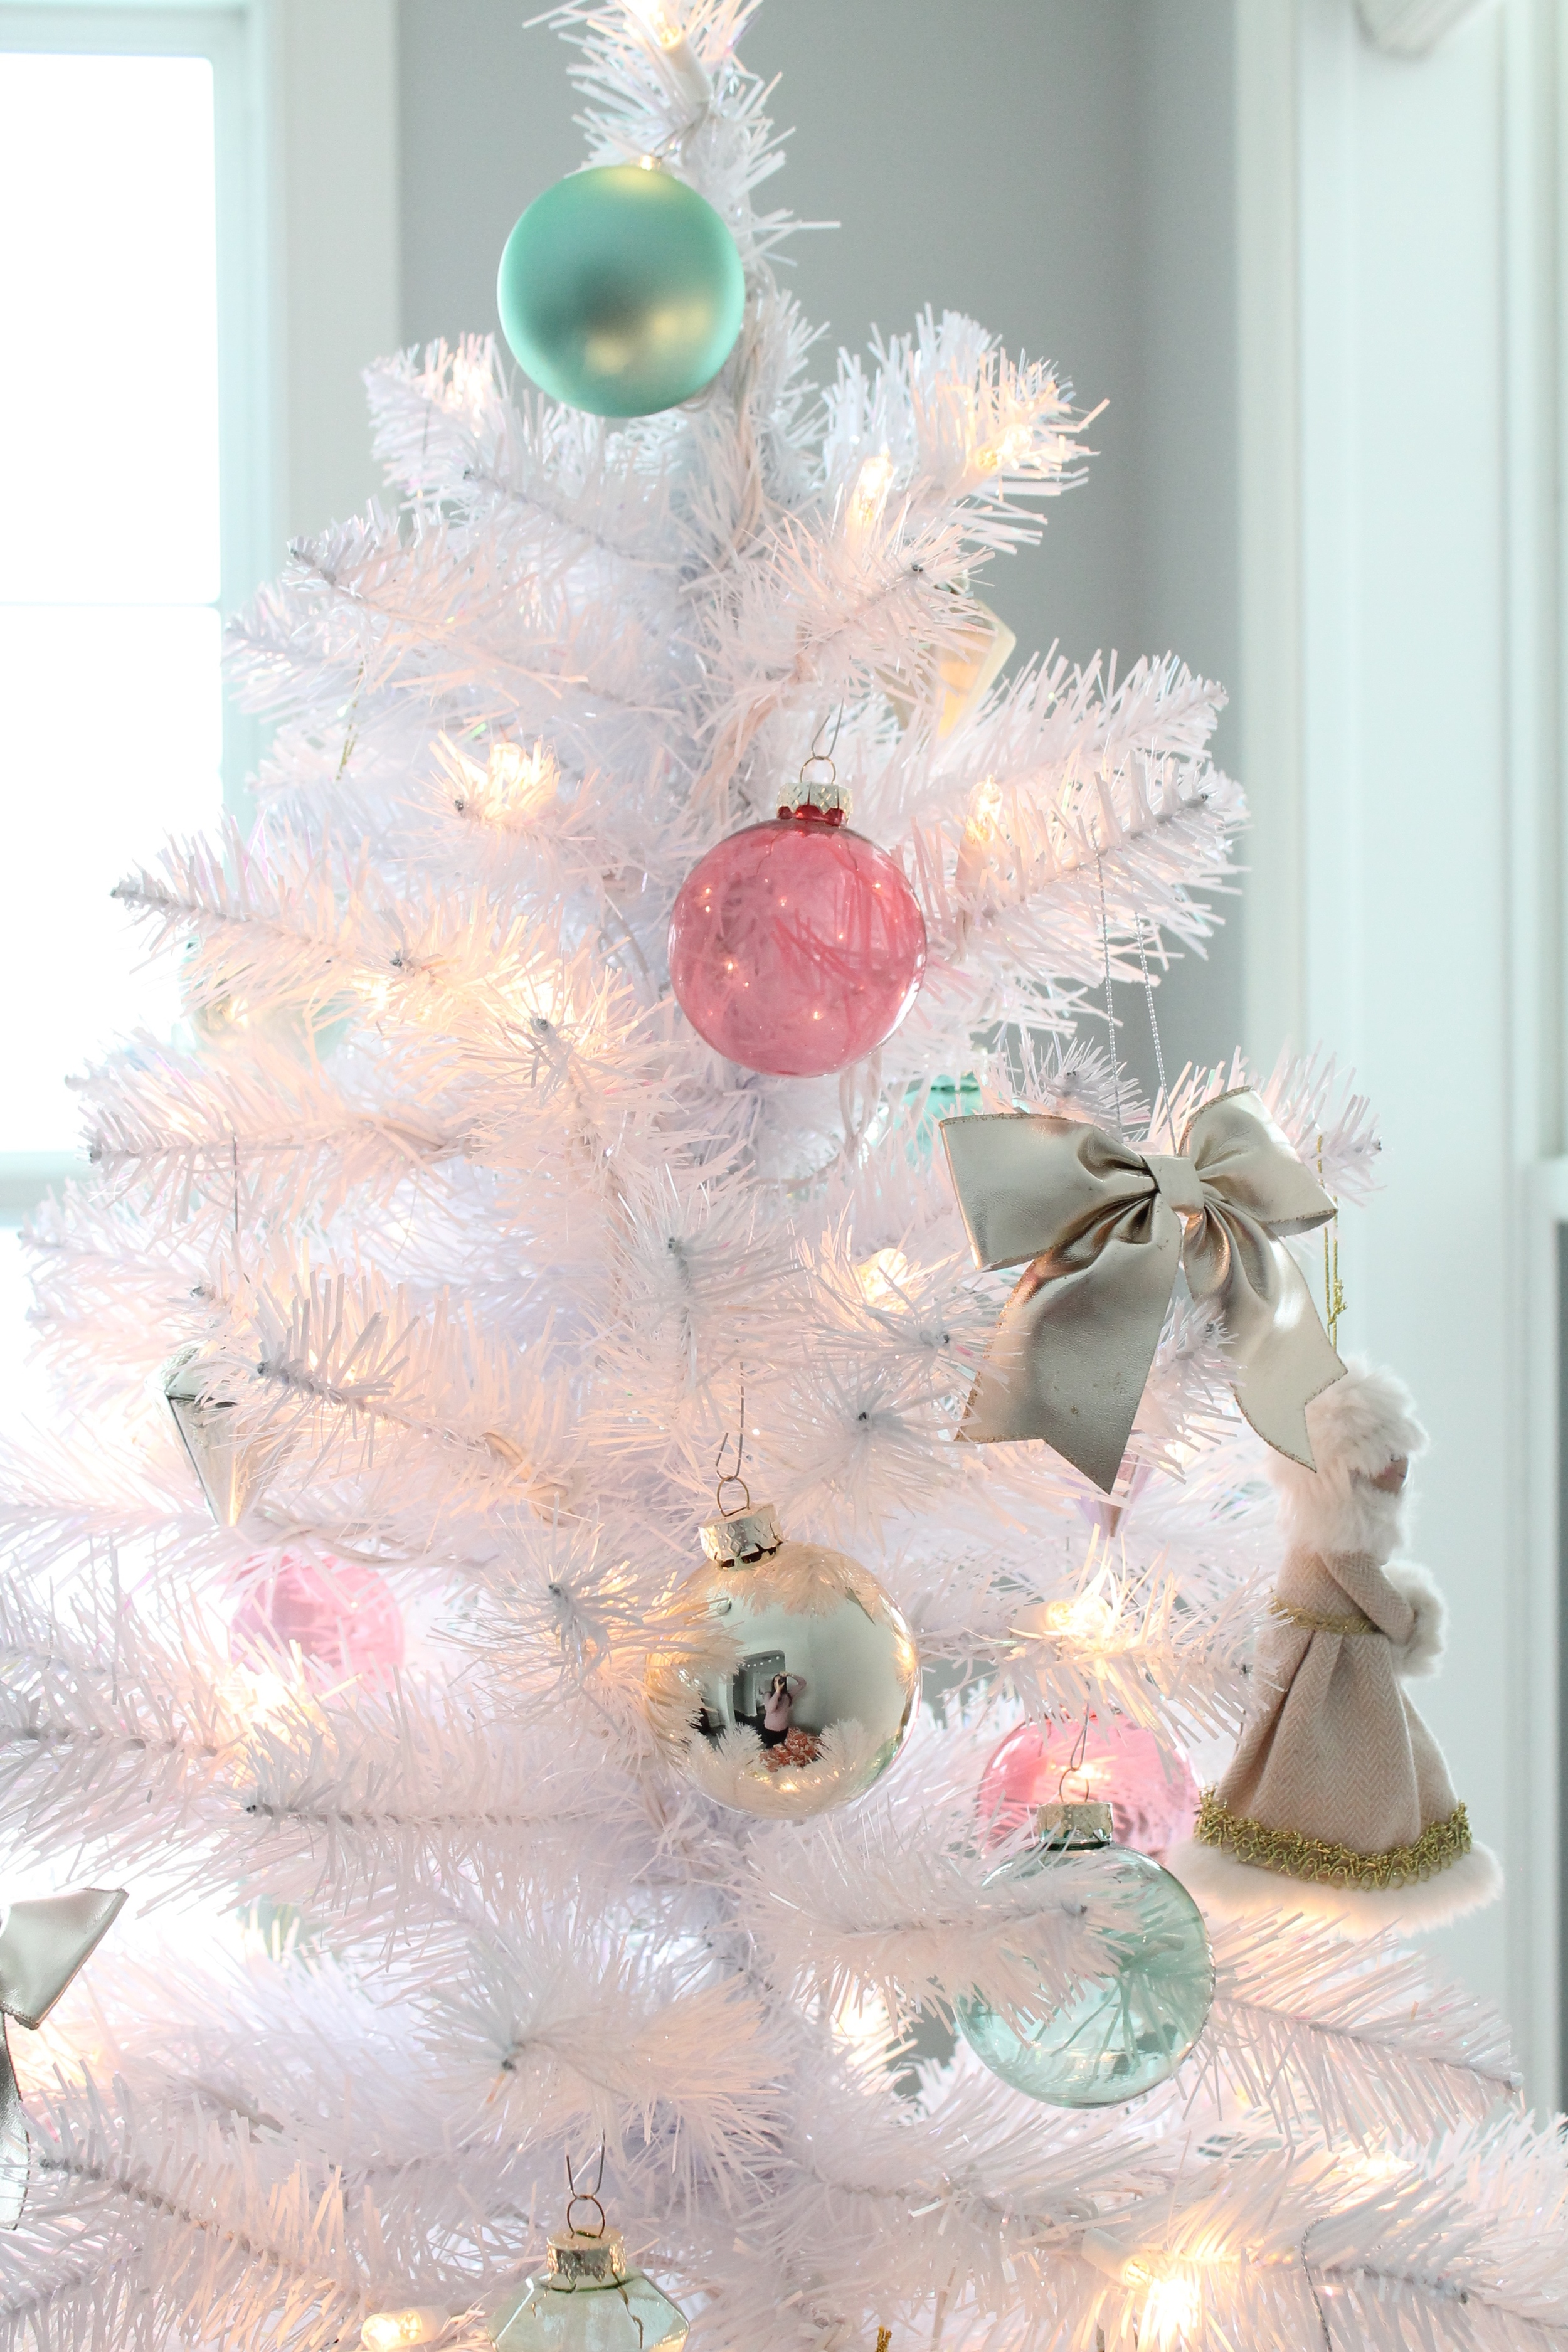 White Christmas Tree With Aqua and Pink Ornaments